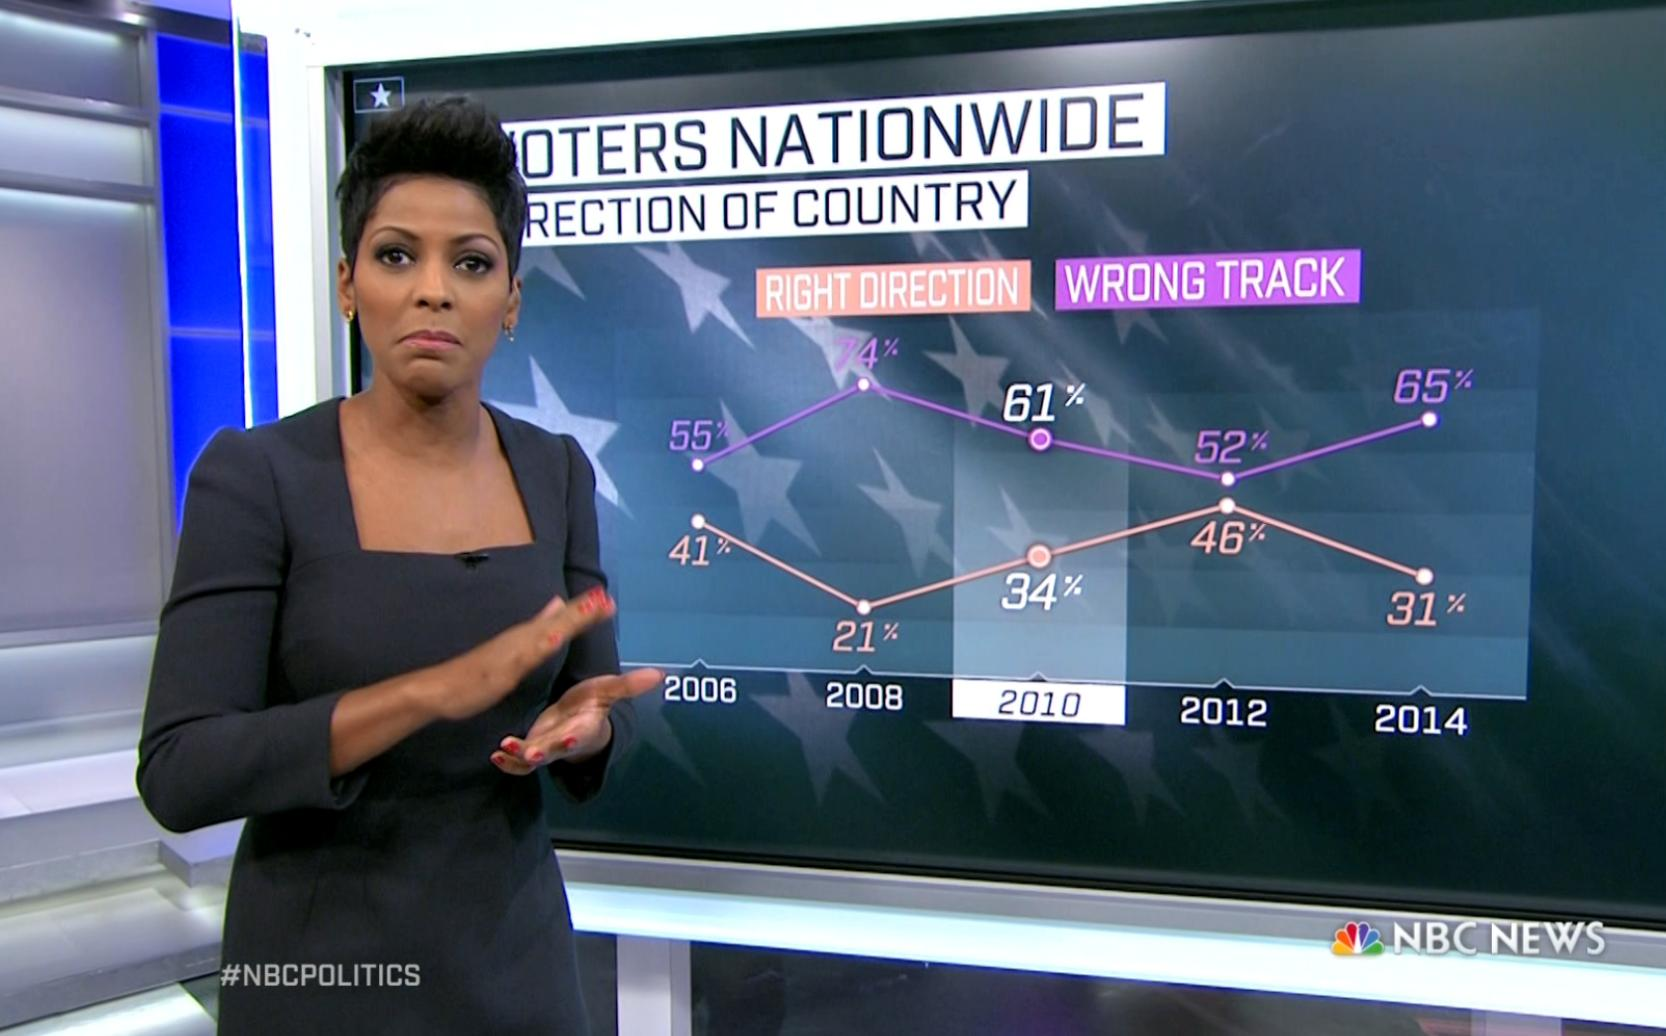 65% say Country is on Wrong Track